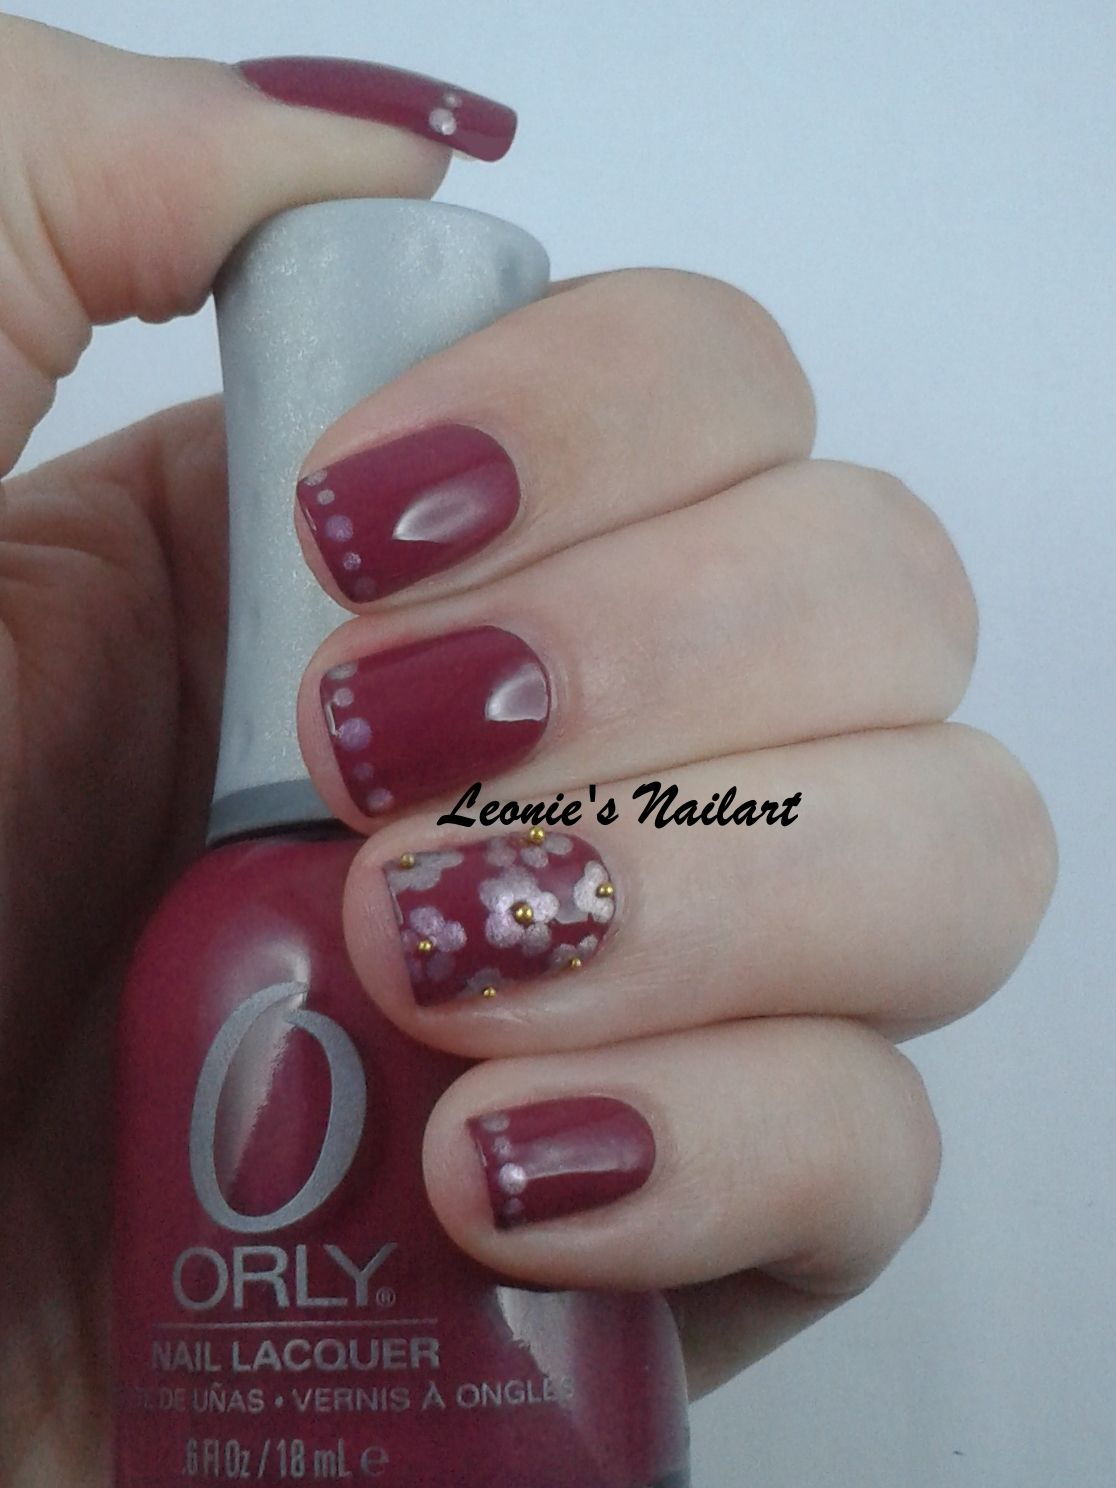 #31dc2 Day 8 Dotticure A simple dotticure with a dotted french line and 5-dotted flowers with gold caviar-beads as the centre. Oldpink: Orly Terra Mauve Dots: Catrice Haute Future GaLILACxy Leonie's Nailart